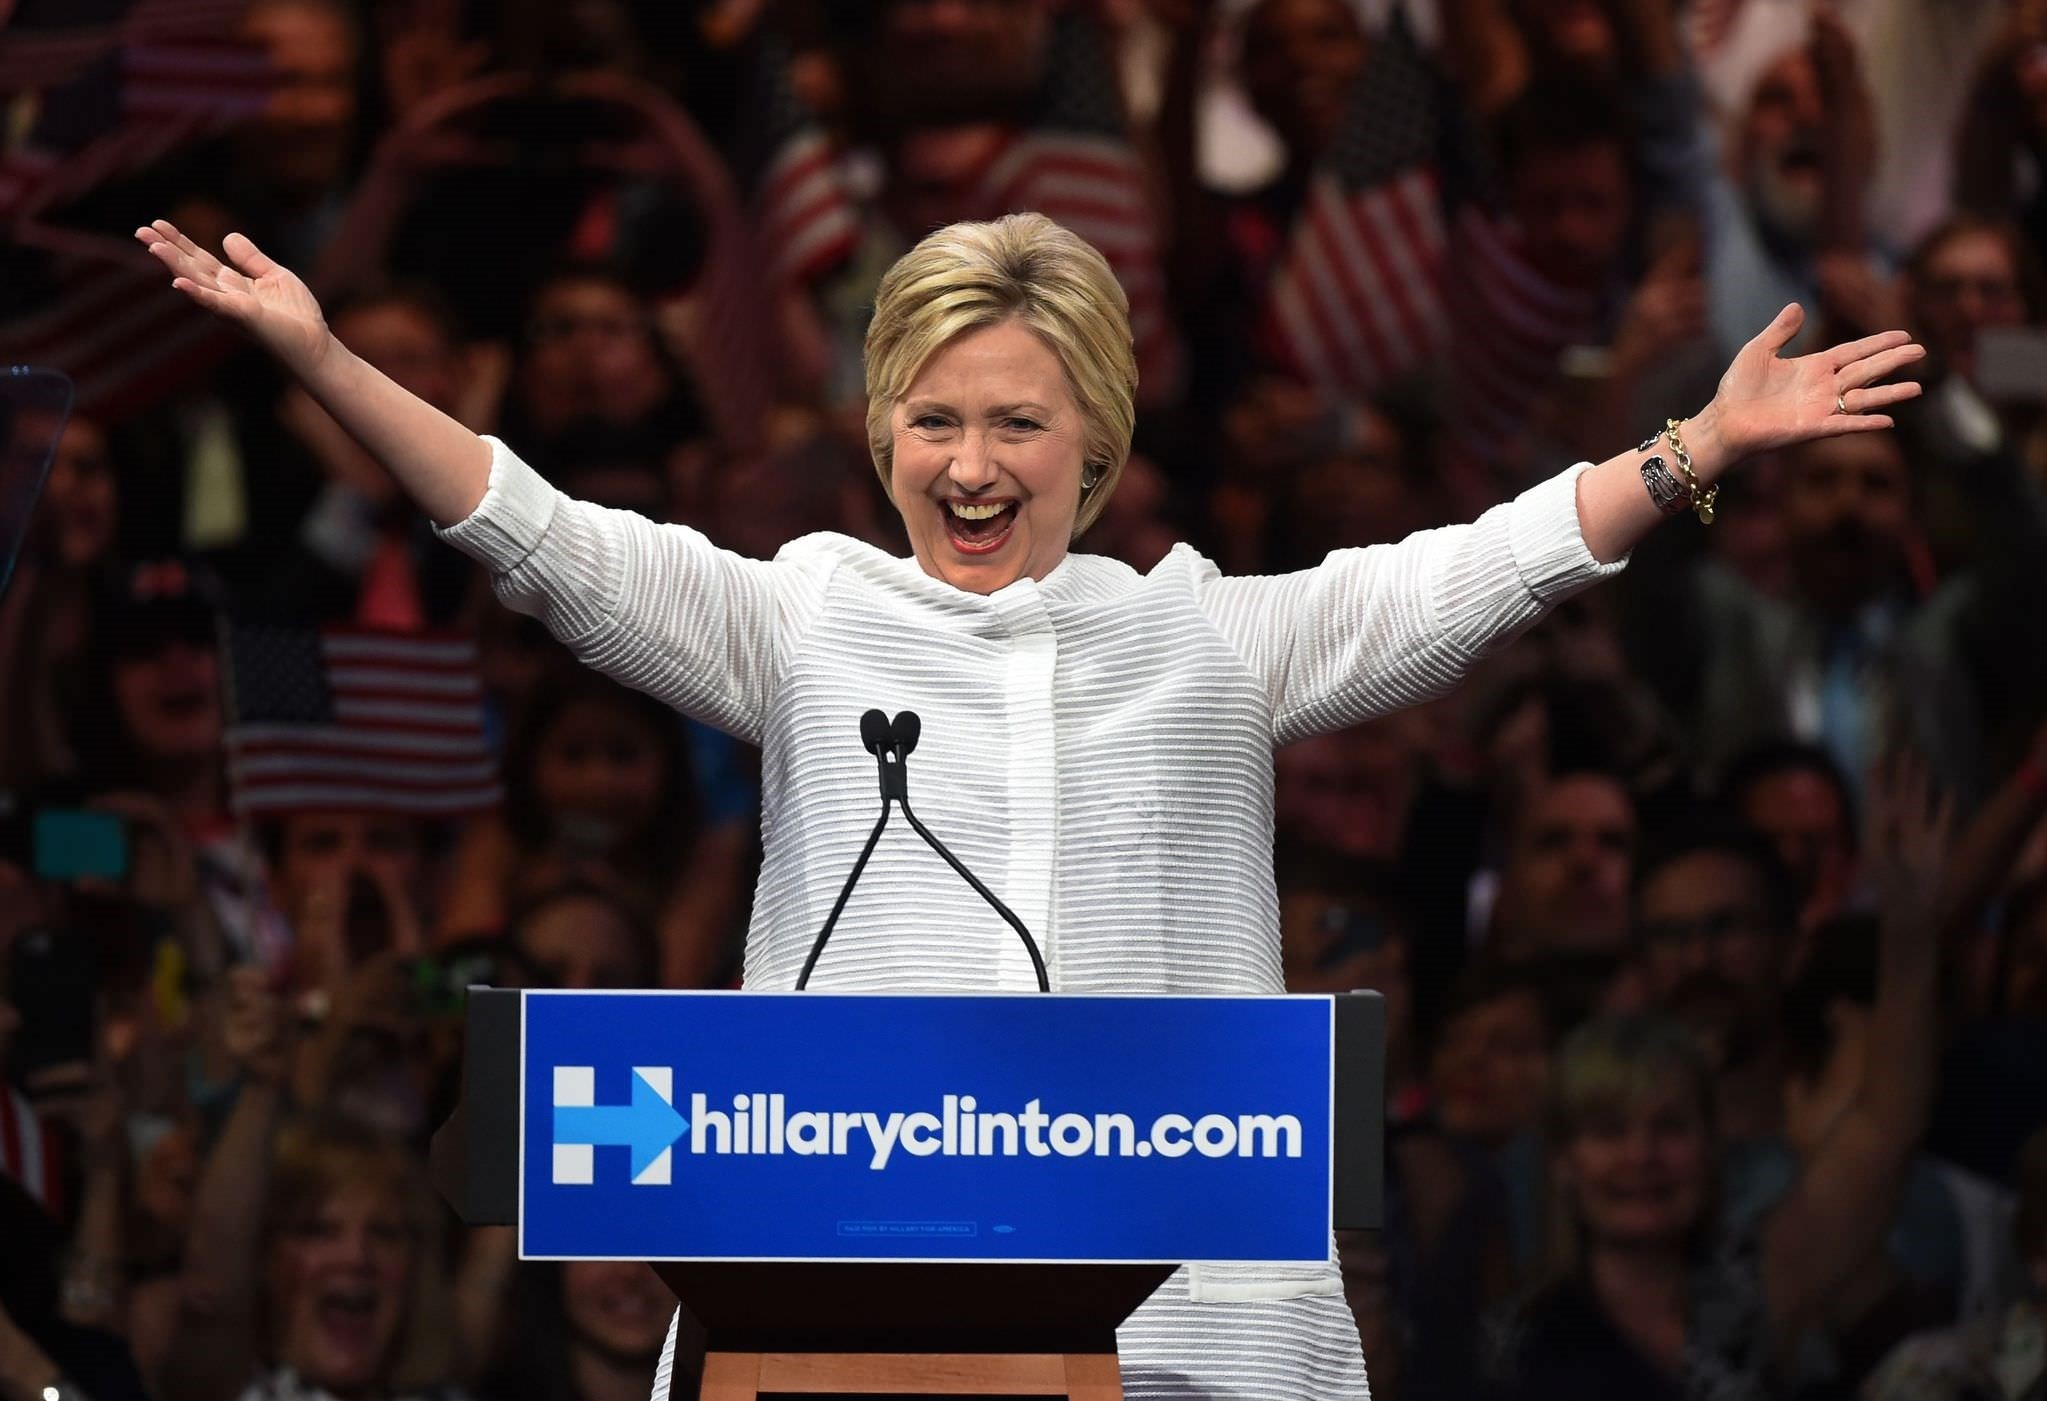 Democratic presidential candidate Hillary Clinton celebrates on stage during her primary night event at the Duggal Greenhouse, Brooklyn Navy Yard, June 7, 2016 in New York. (AFP Photo)